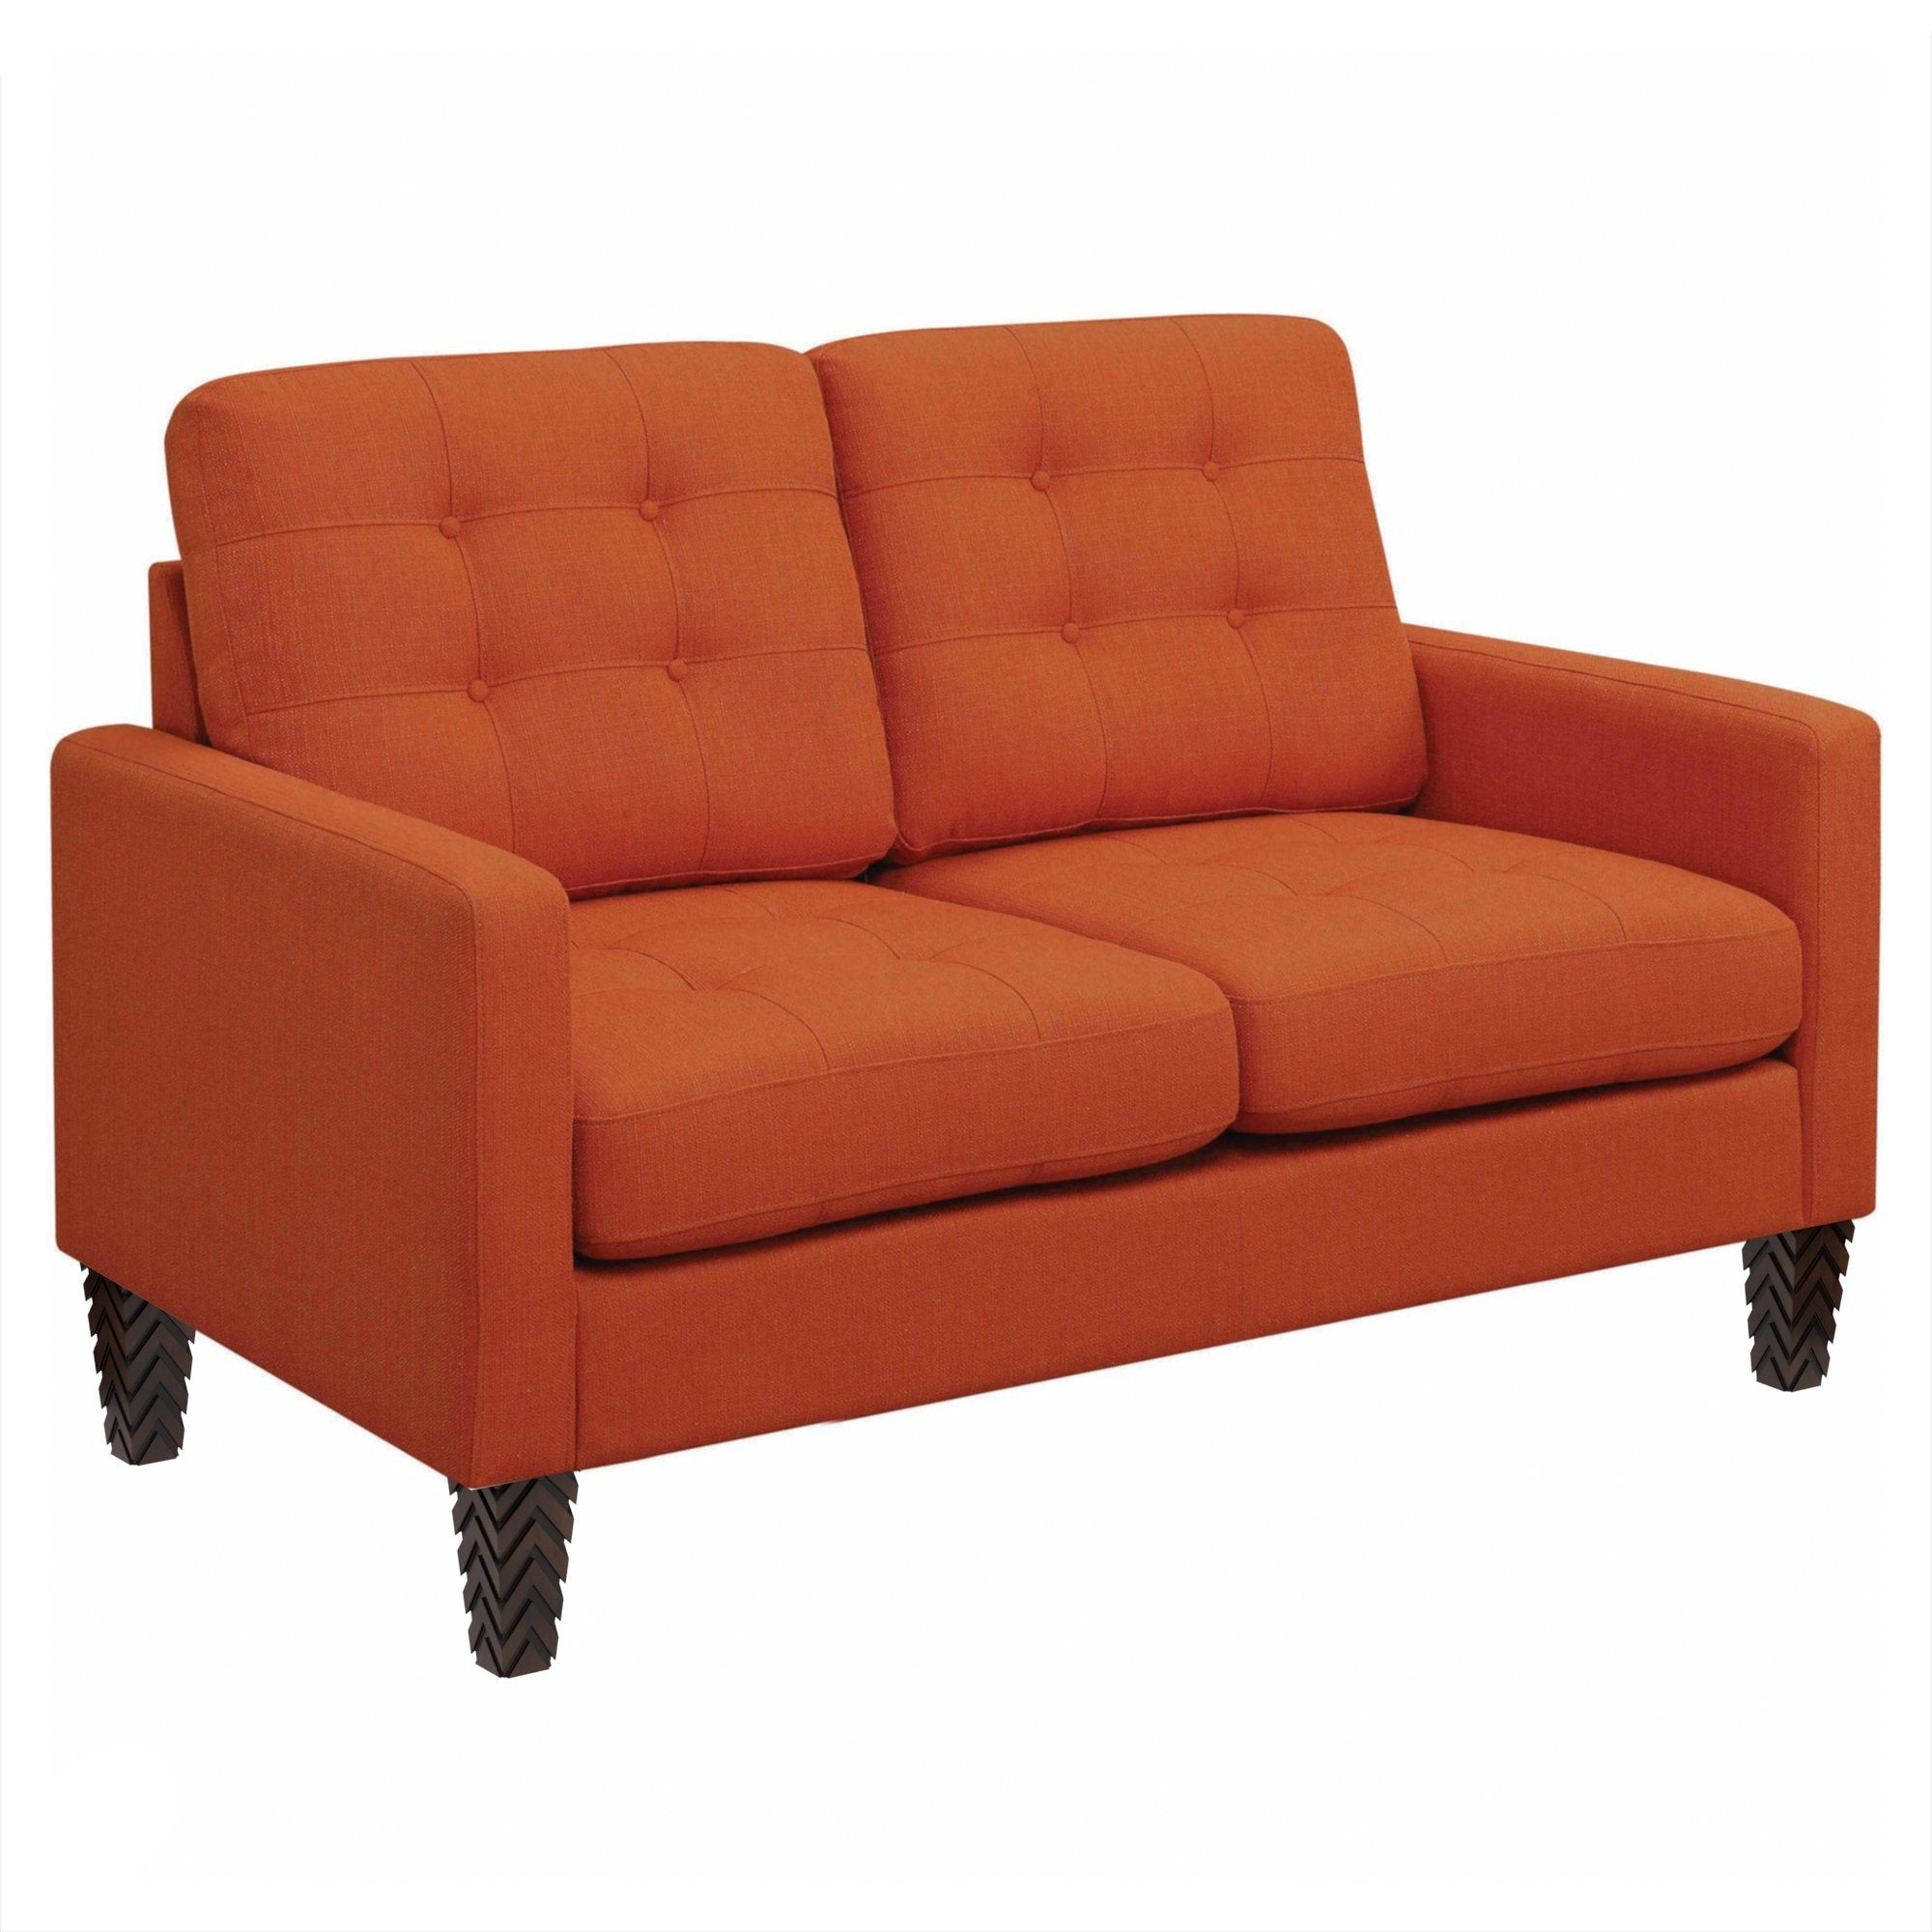 Kessa Loveseat Orange